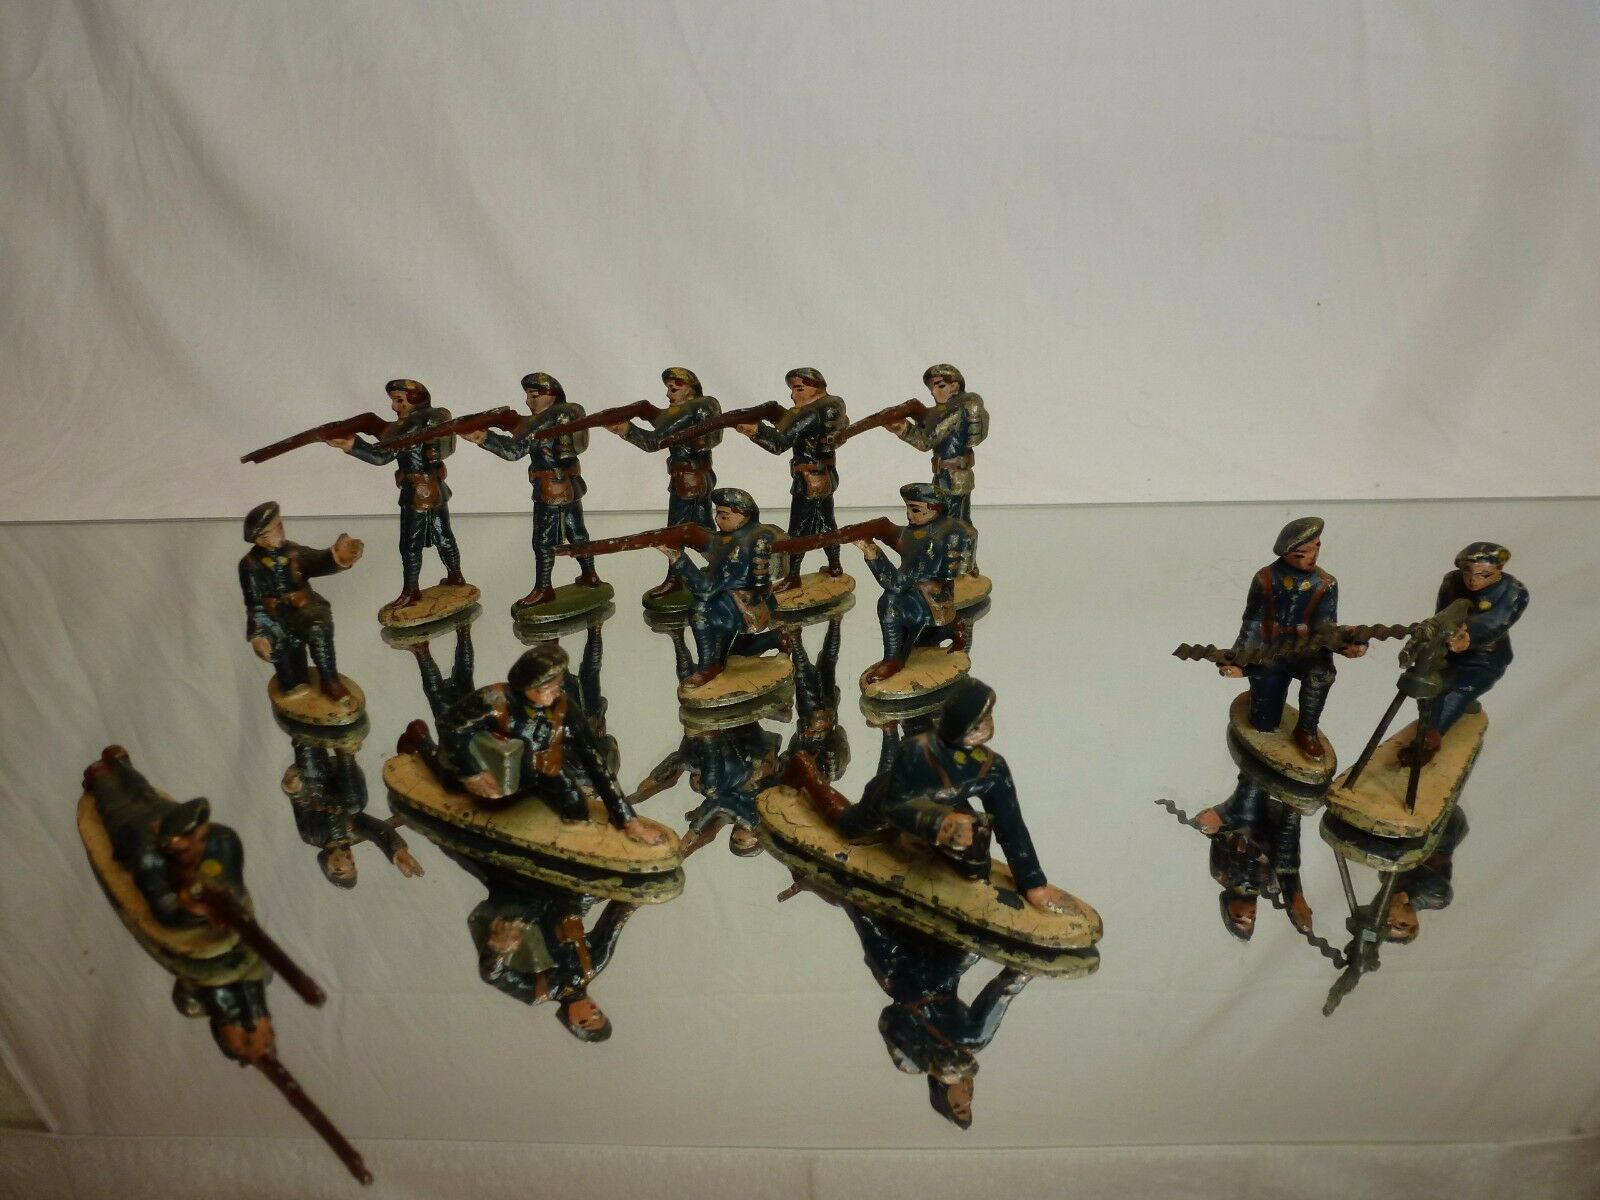 LOT of 13x METAL FRANCE SOLDIERS WW1 - ARMY MILITARY blueE - GOOD CONDITION